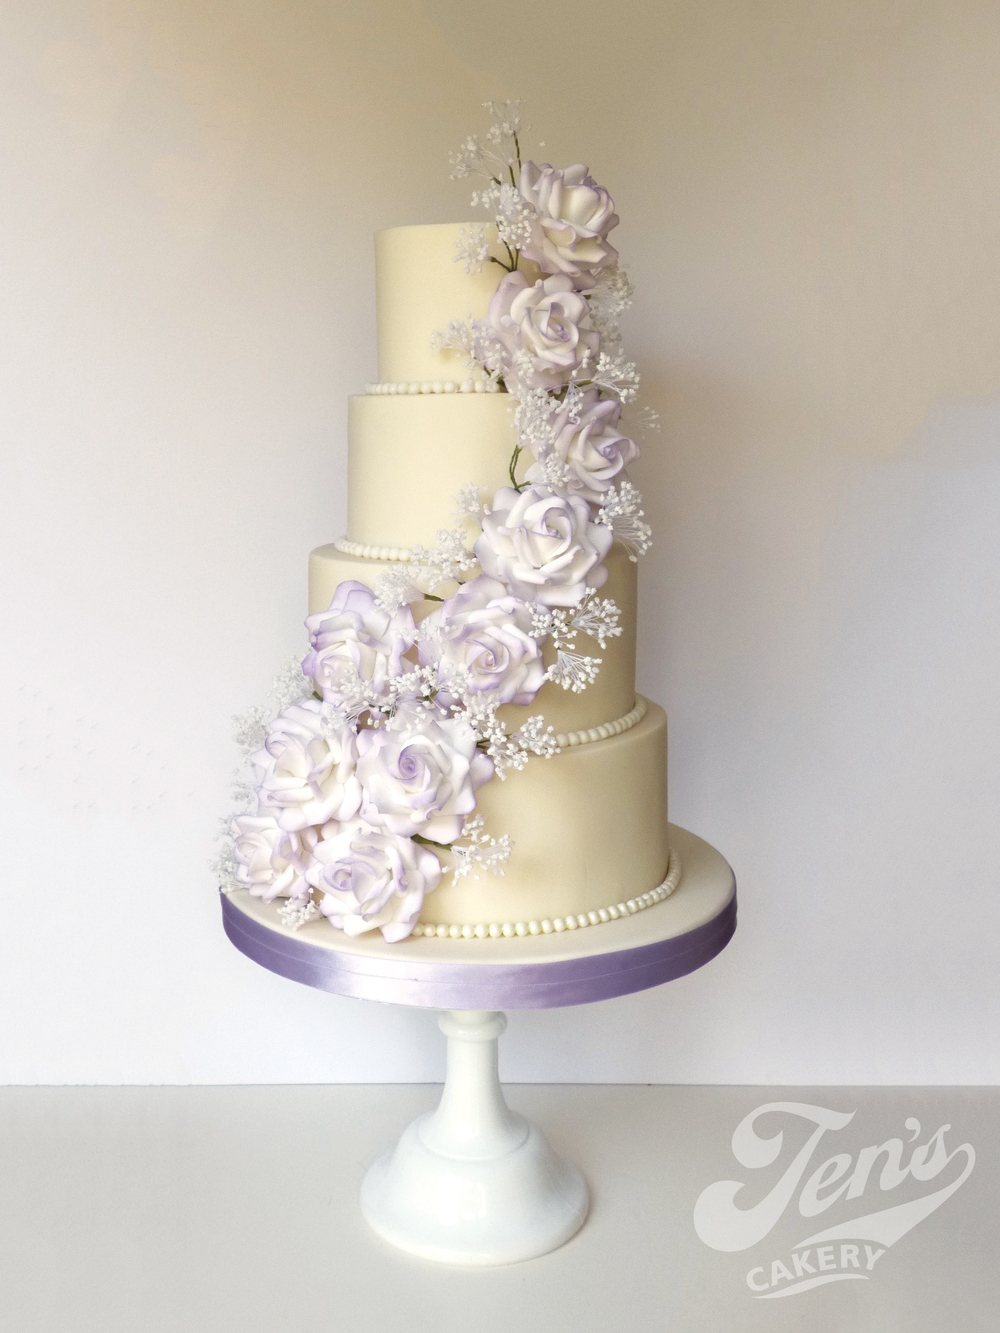 A wedding cake with a cascade of sugar roses ang gypsophilia or baby's breath.